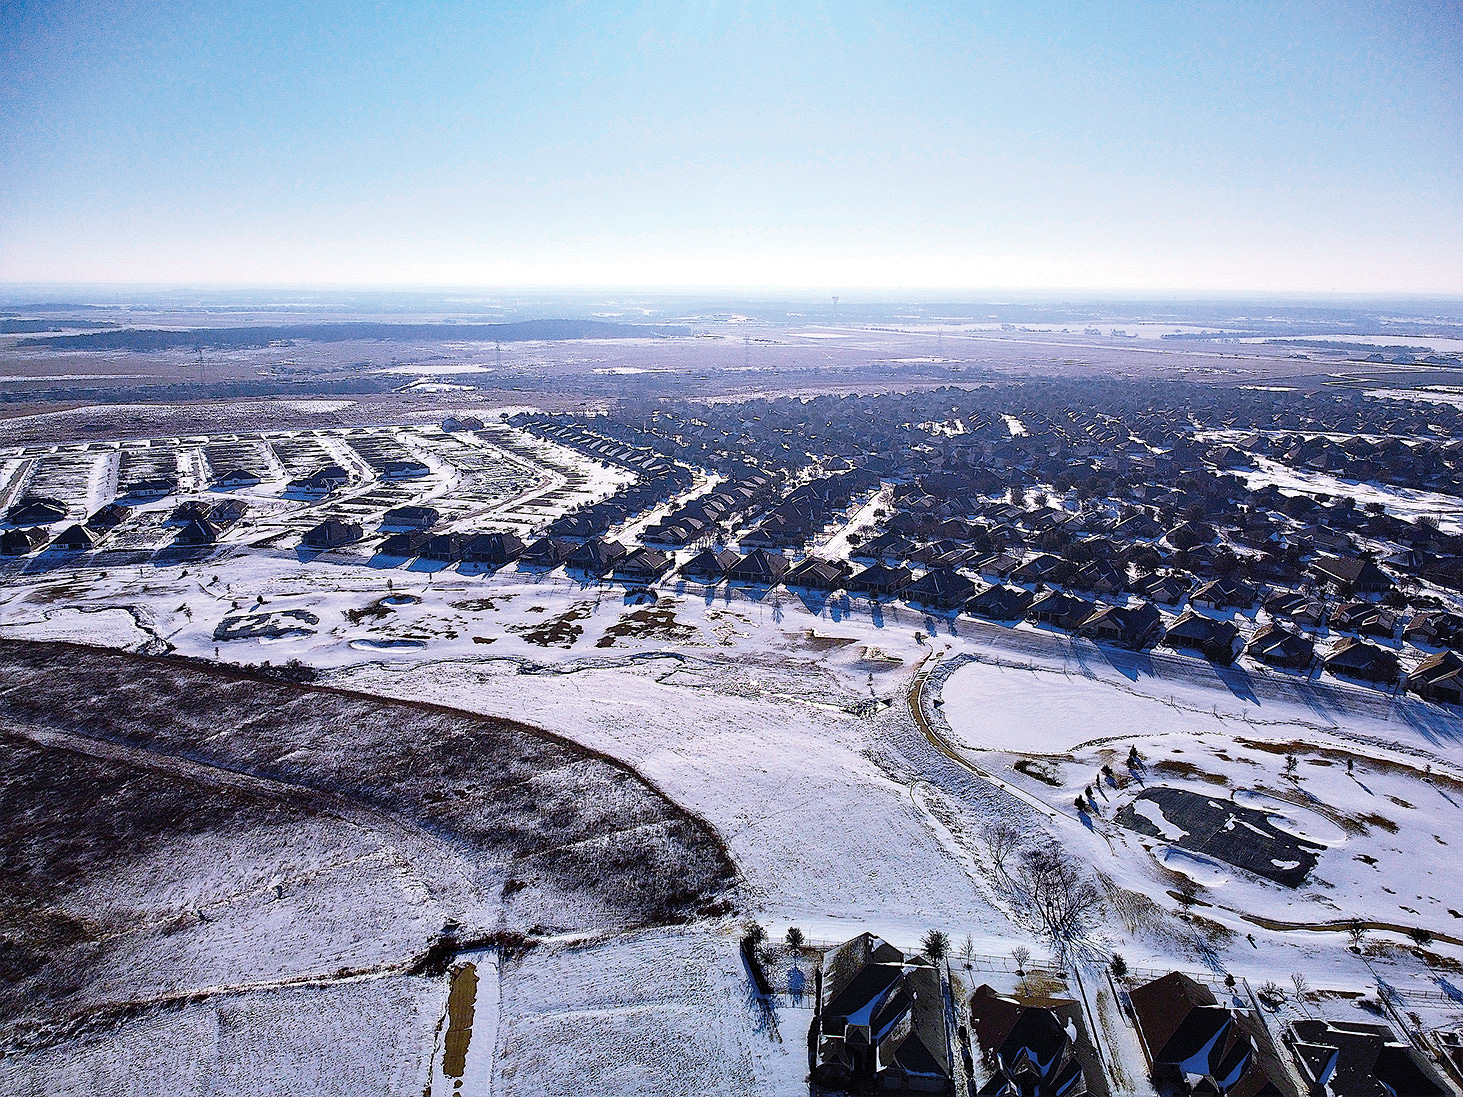 Minus 12 degrees and 40 knot gusts; photo taken on the fly as the drone passed overhead. Pond frozen and snow-covered.